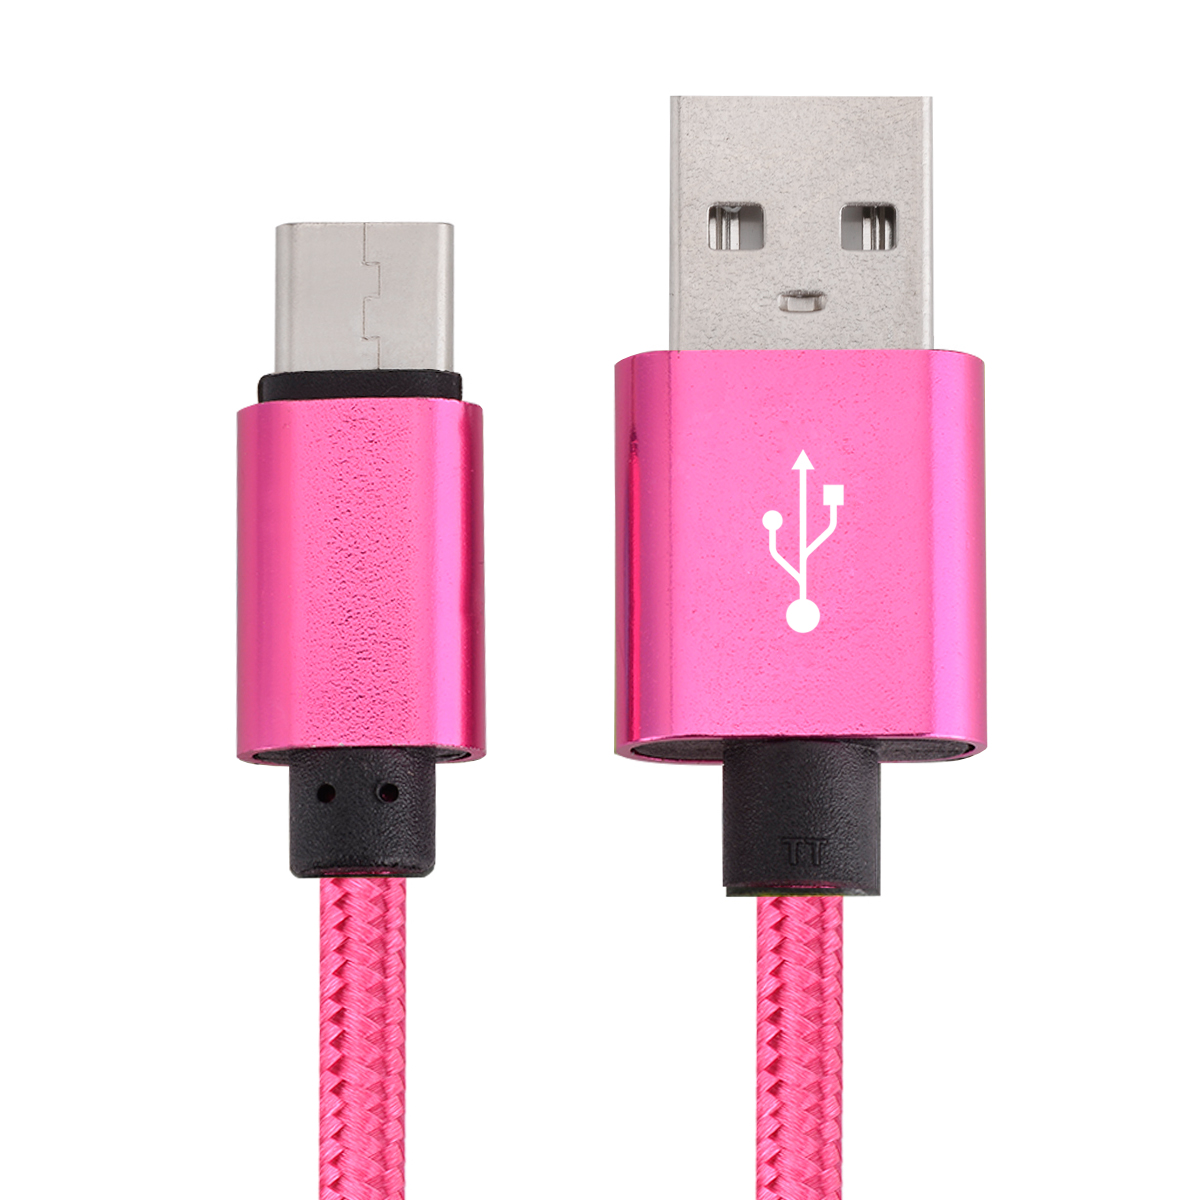 USB Type C Cable Fast Charging Cable 10FT USB-C Type-C 3.1 Nylon Braided Data Sync Charger Cord For Samsung Galaxy S8 + Note 8 Nexus 5X 6P LG G5 G6 V20 HTC 10 Google Pixel XL OnePlus 3 5 Hot Pink